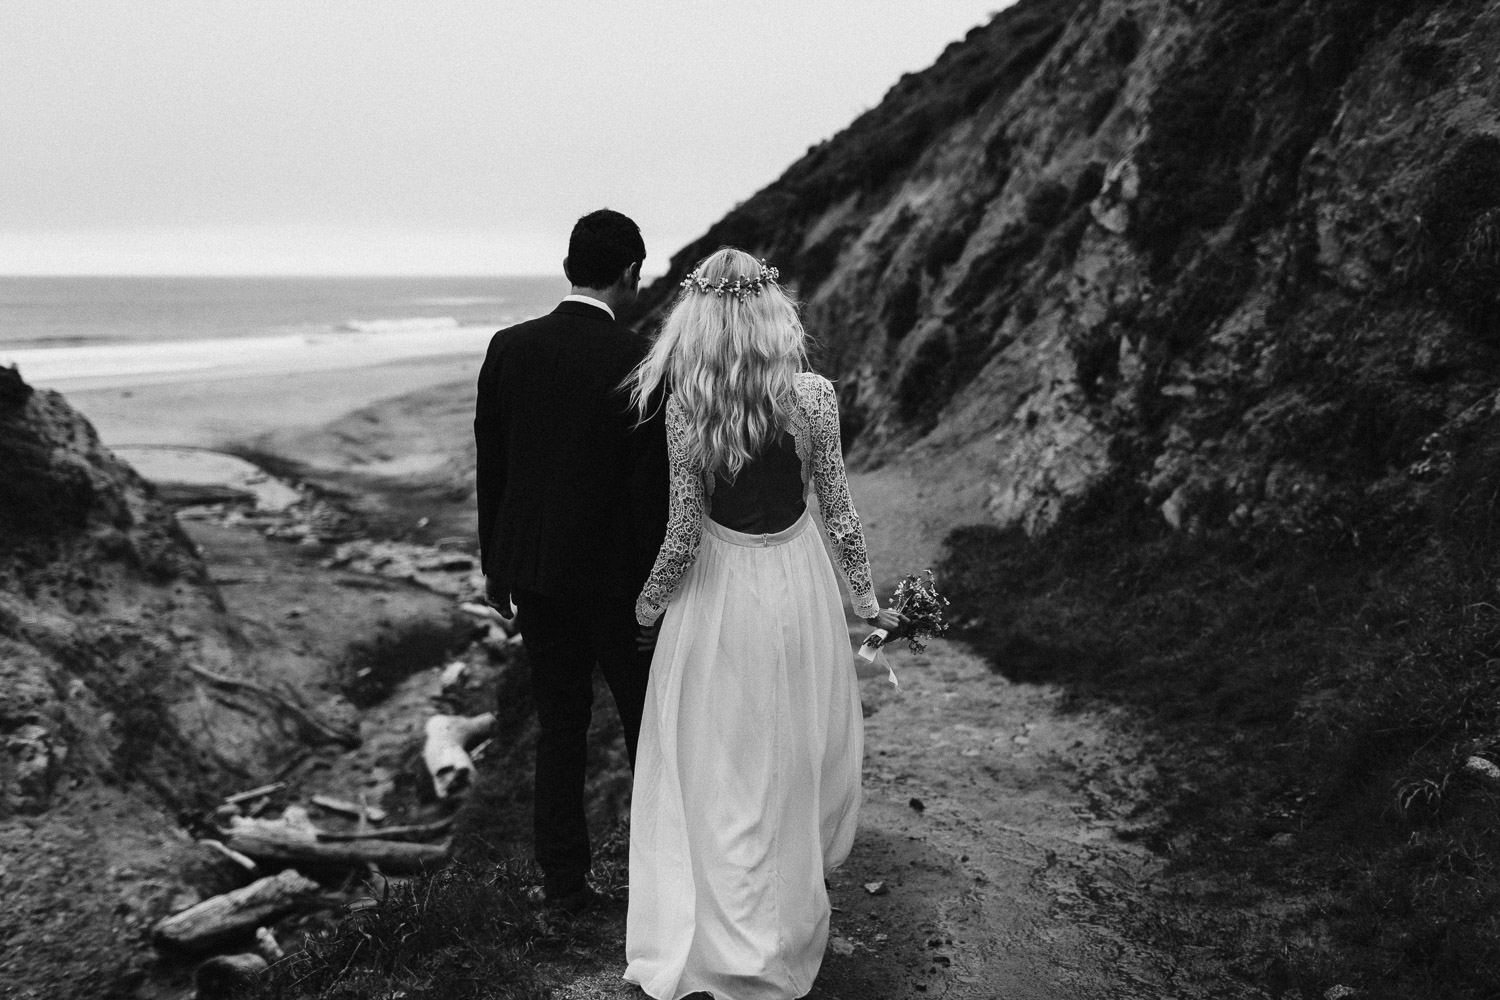 Black and White image of bride and groom walk together